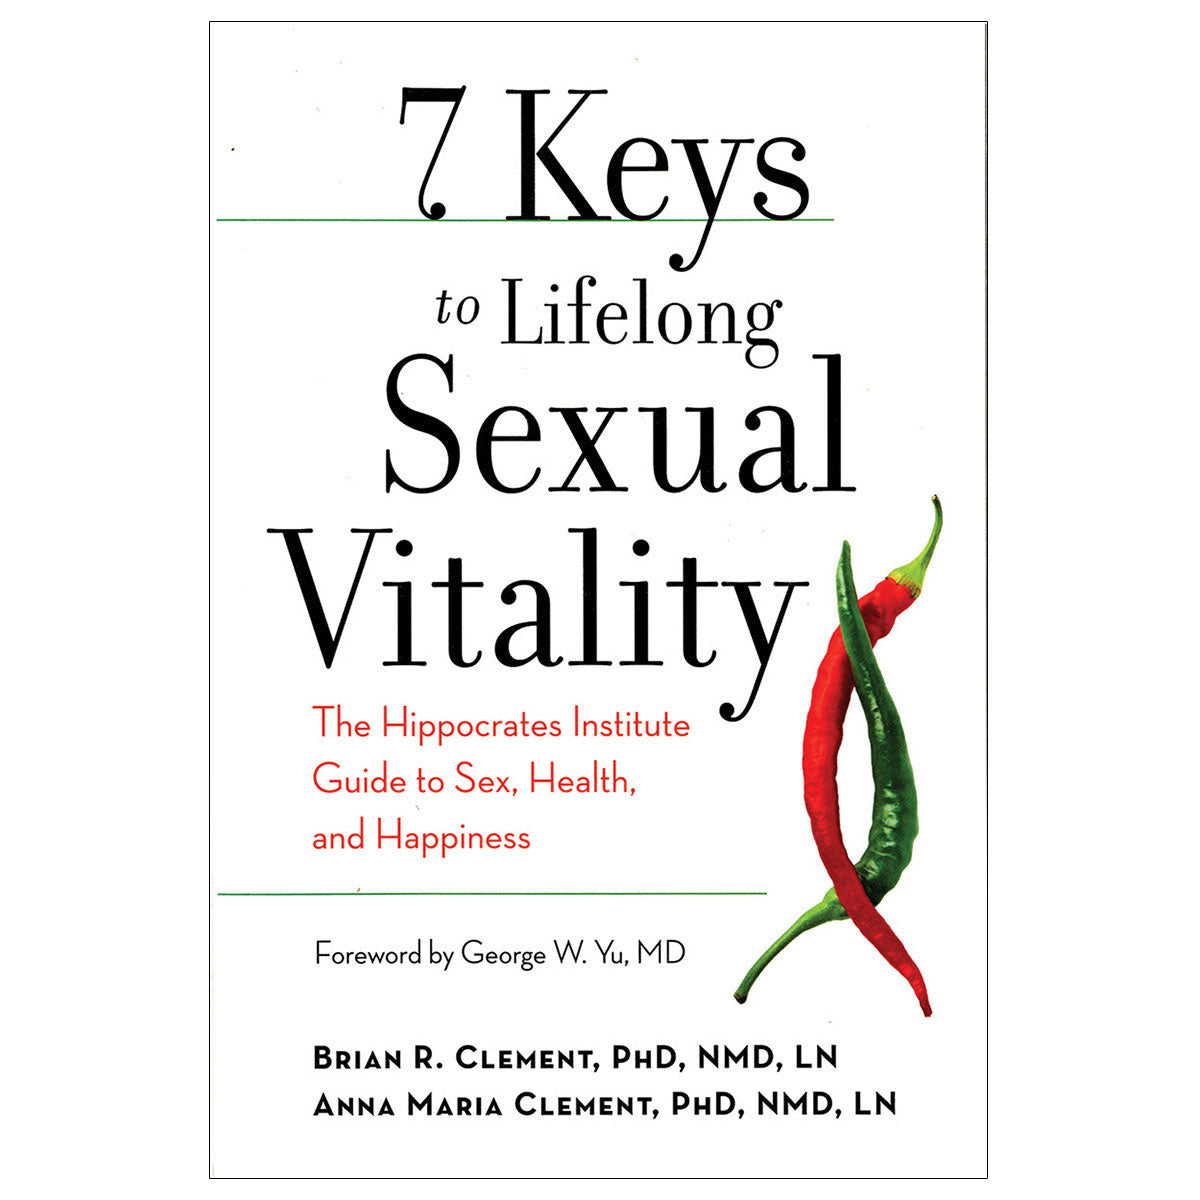 7 (Seven) Keys to Lifelong Sexual Vitality - The Hippocrates Institute Guide to Sex, Health, and Happiness - New World Library